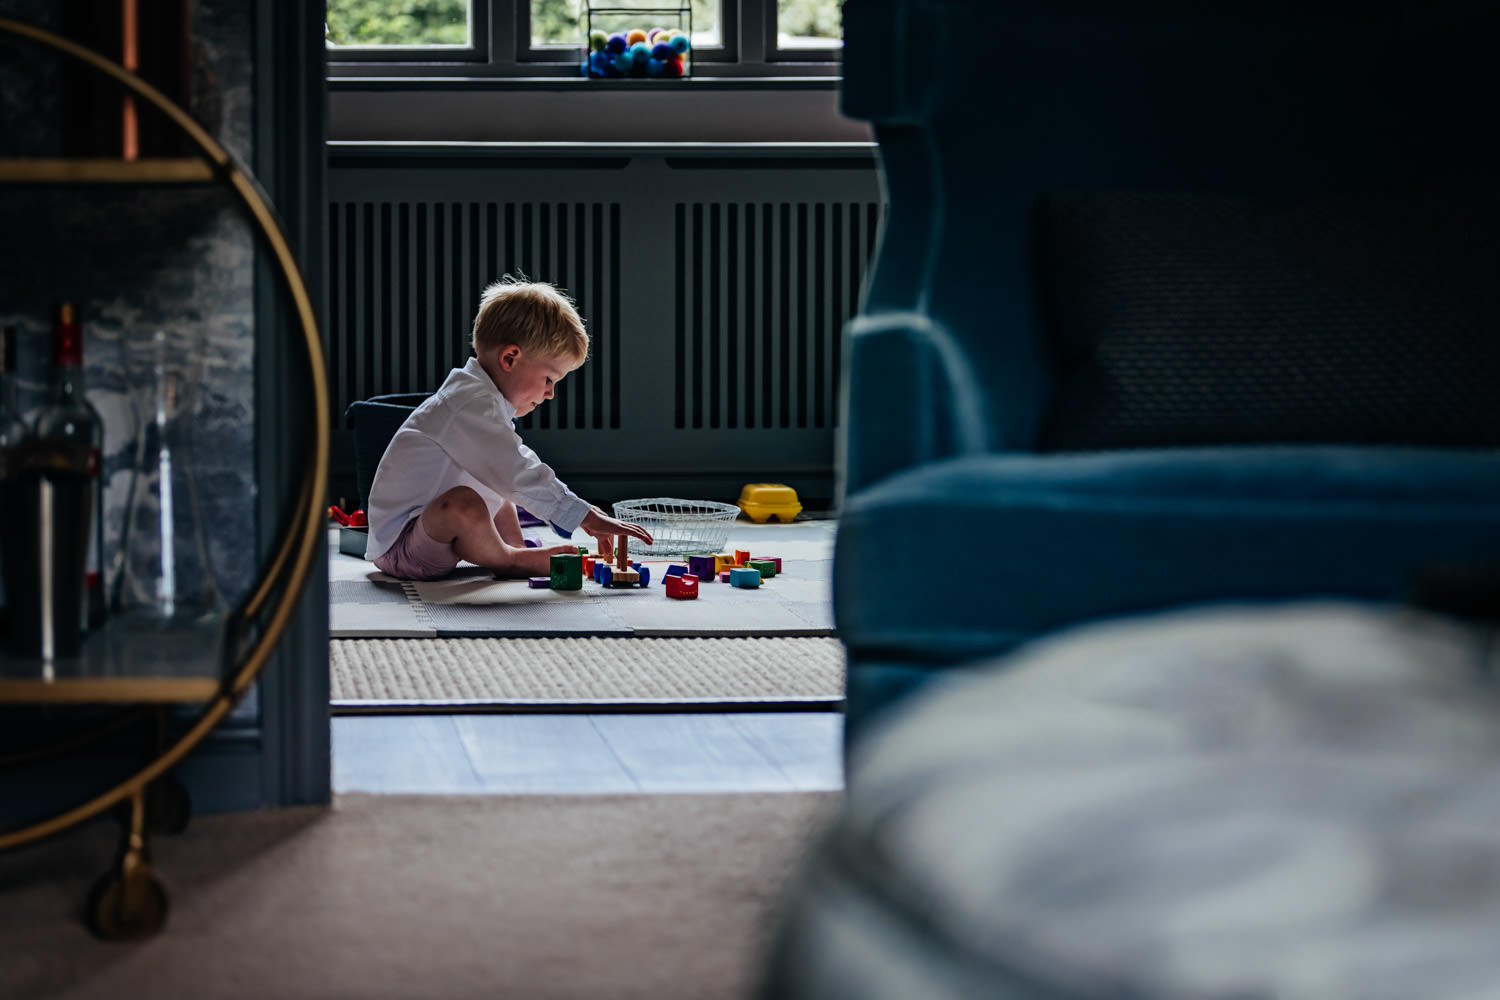 Little boy playing quietly by himself in the lounge